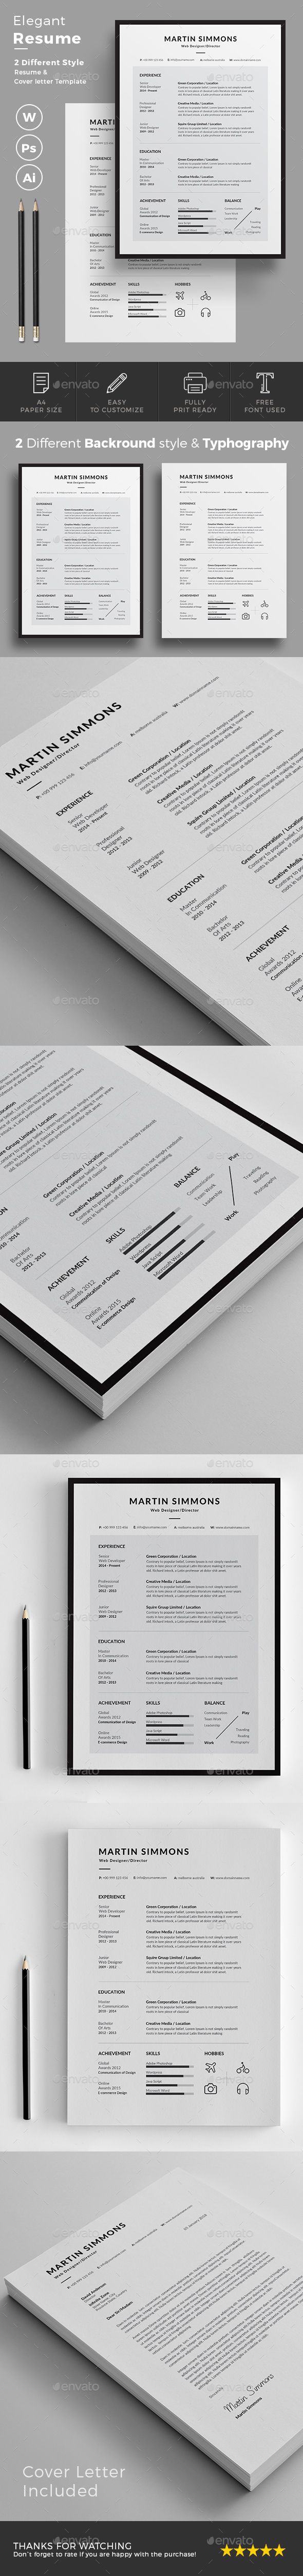 Resume Resumes Stationery Resume Cv